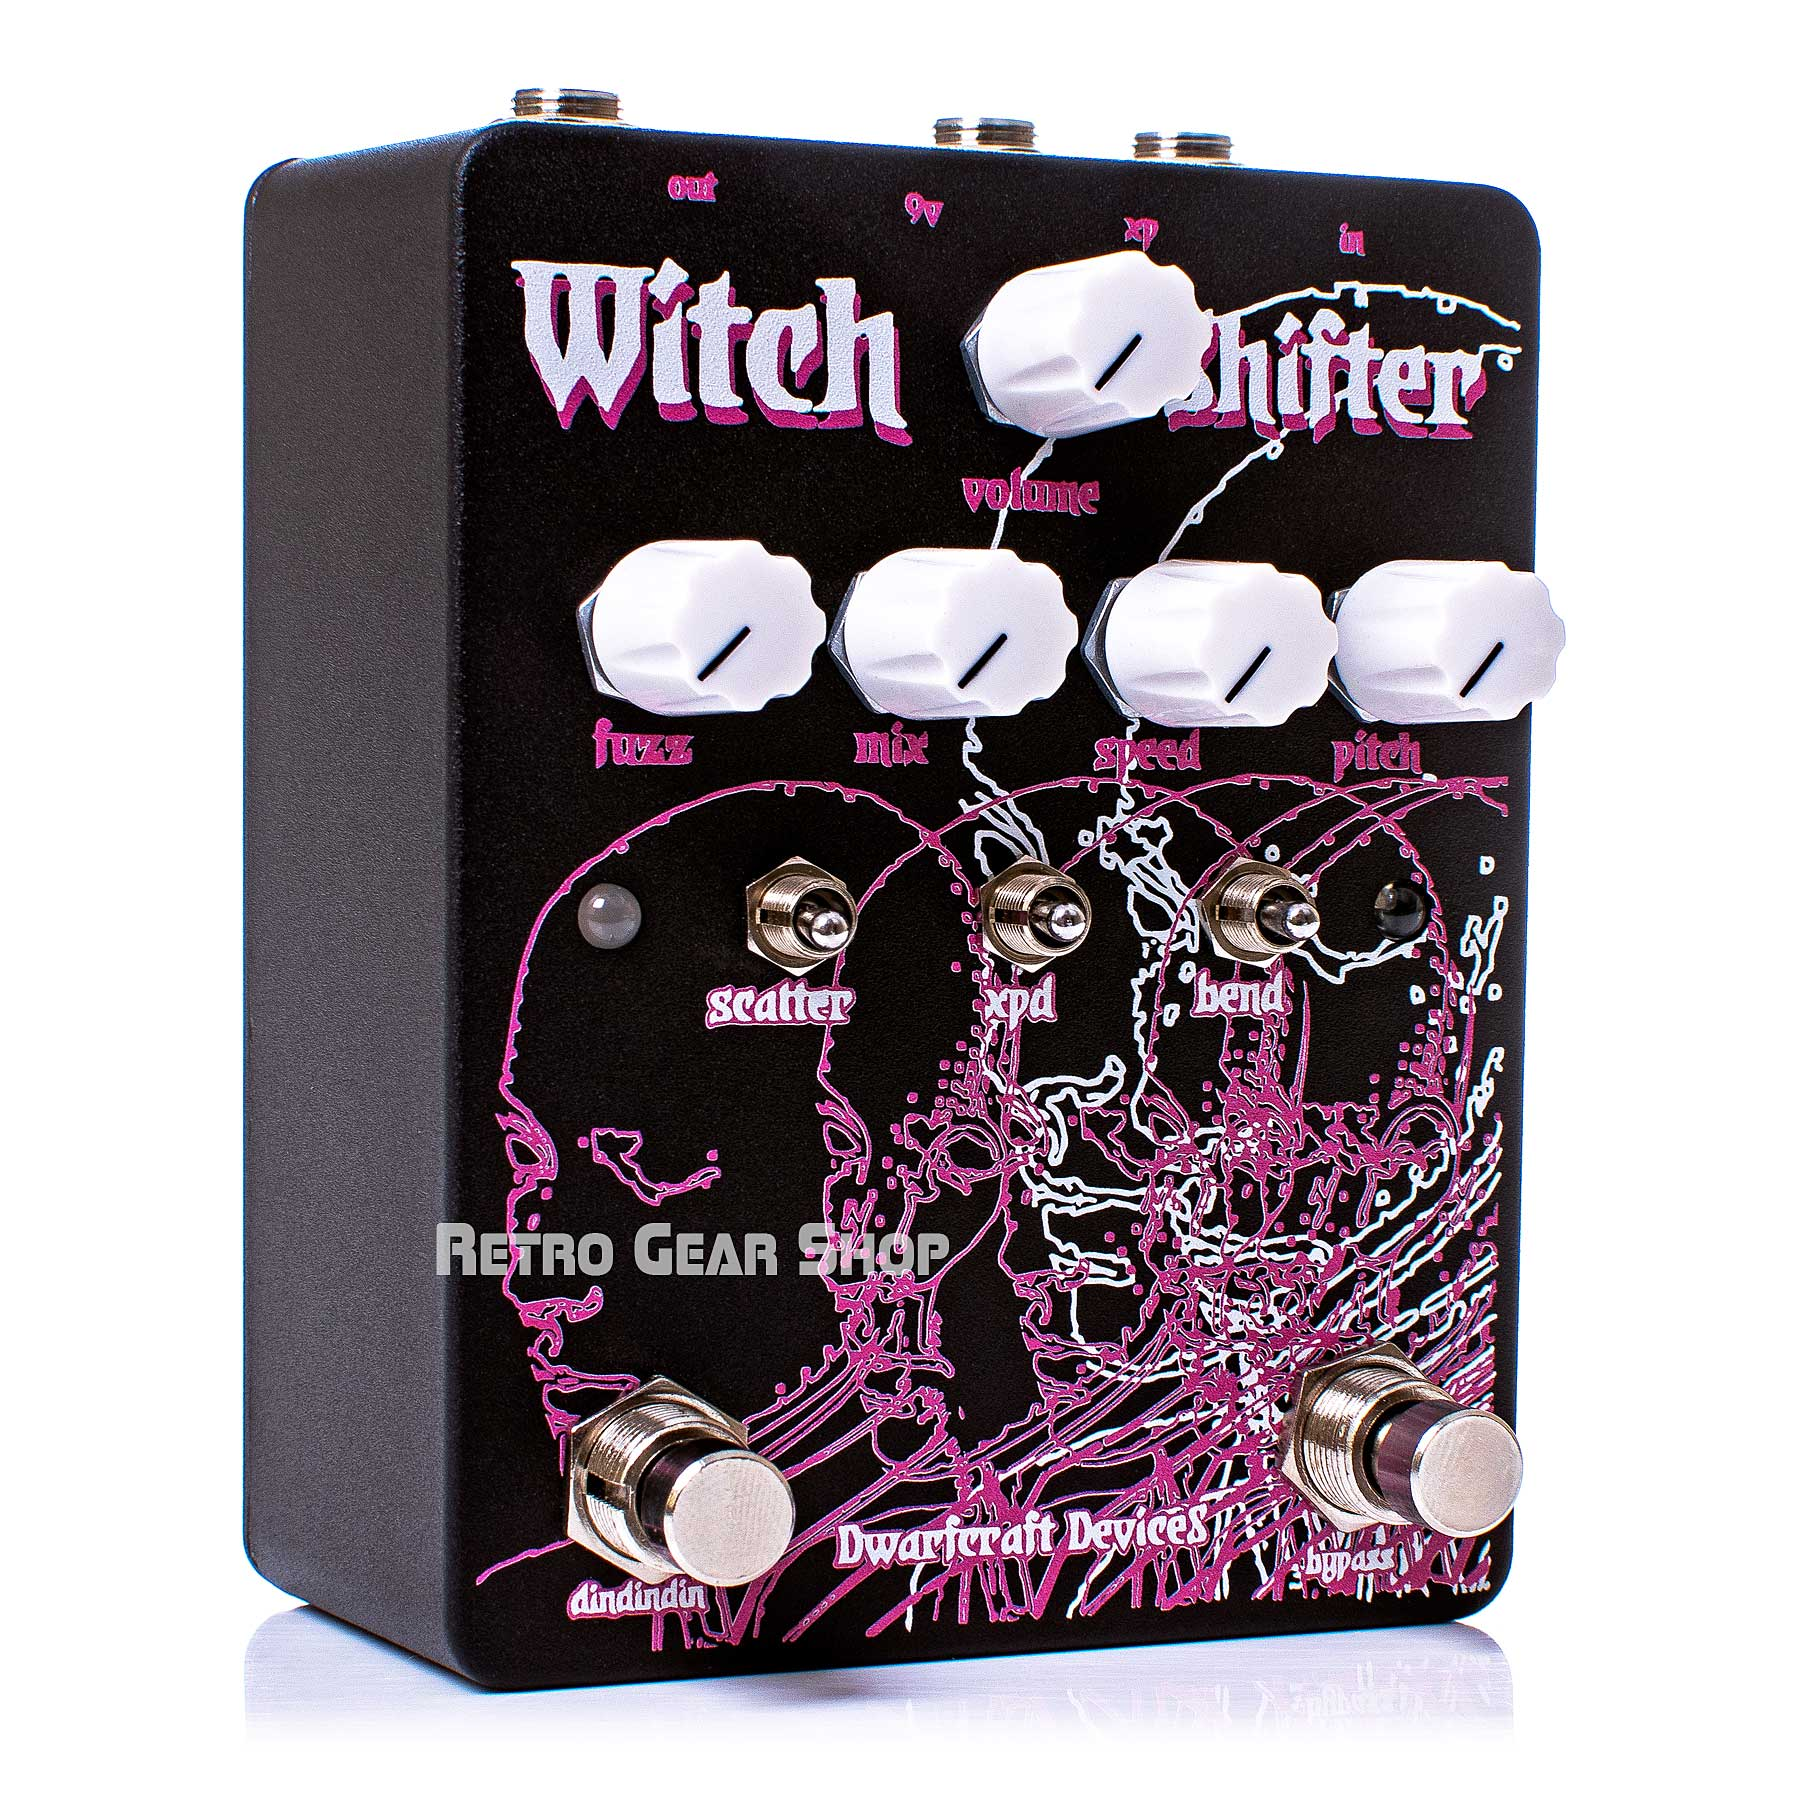 Dwarfcraft Devices Witch Shifter Pitch Effect Pedal